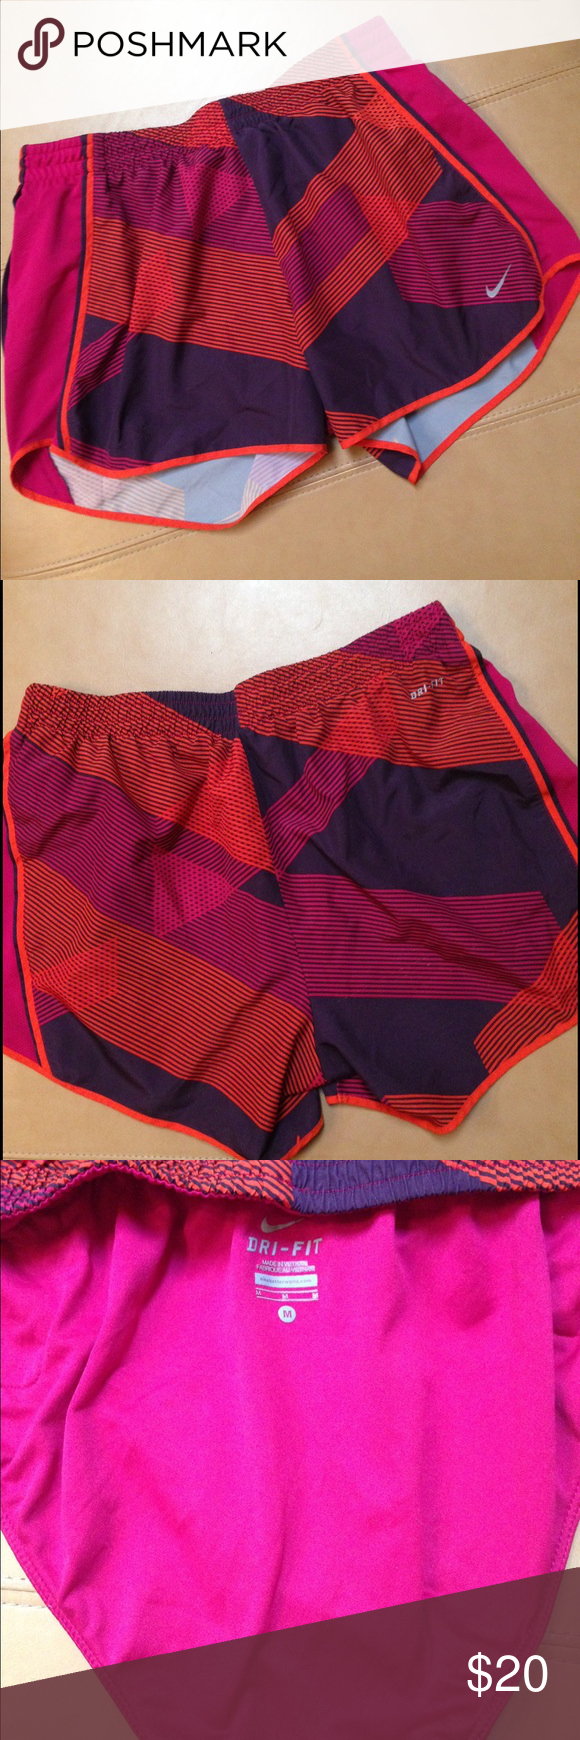 Nike Dri-Fit pink/purple print athletic shorts Excellent shape. No flaws. Worn once. Attached underpants. Size Medium. Nike Shorts